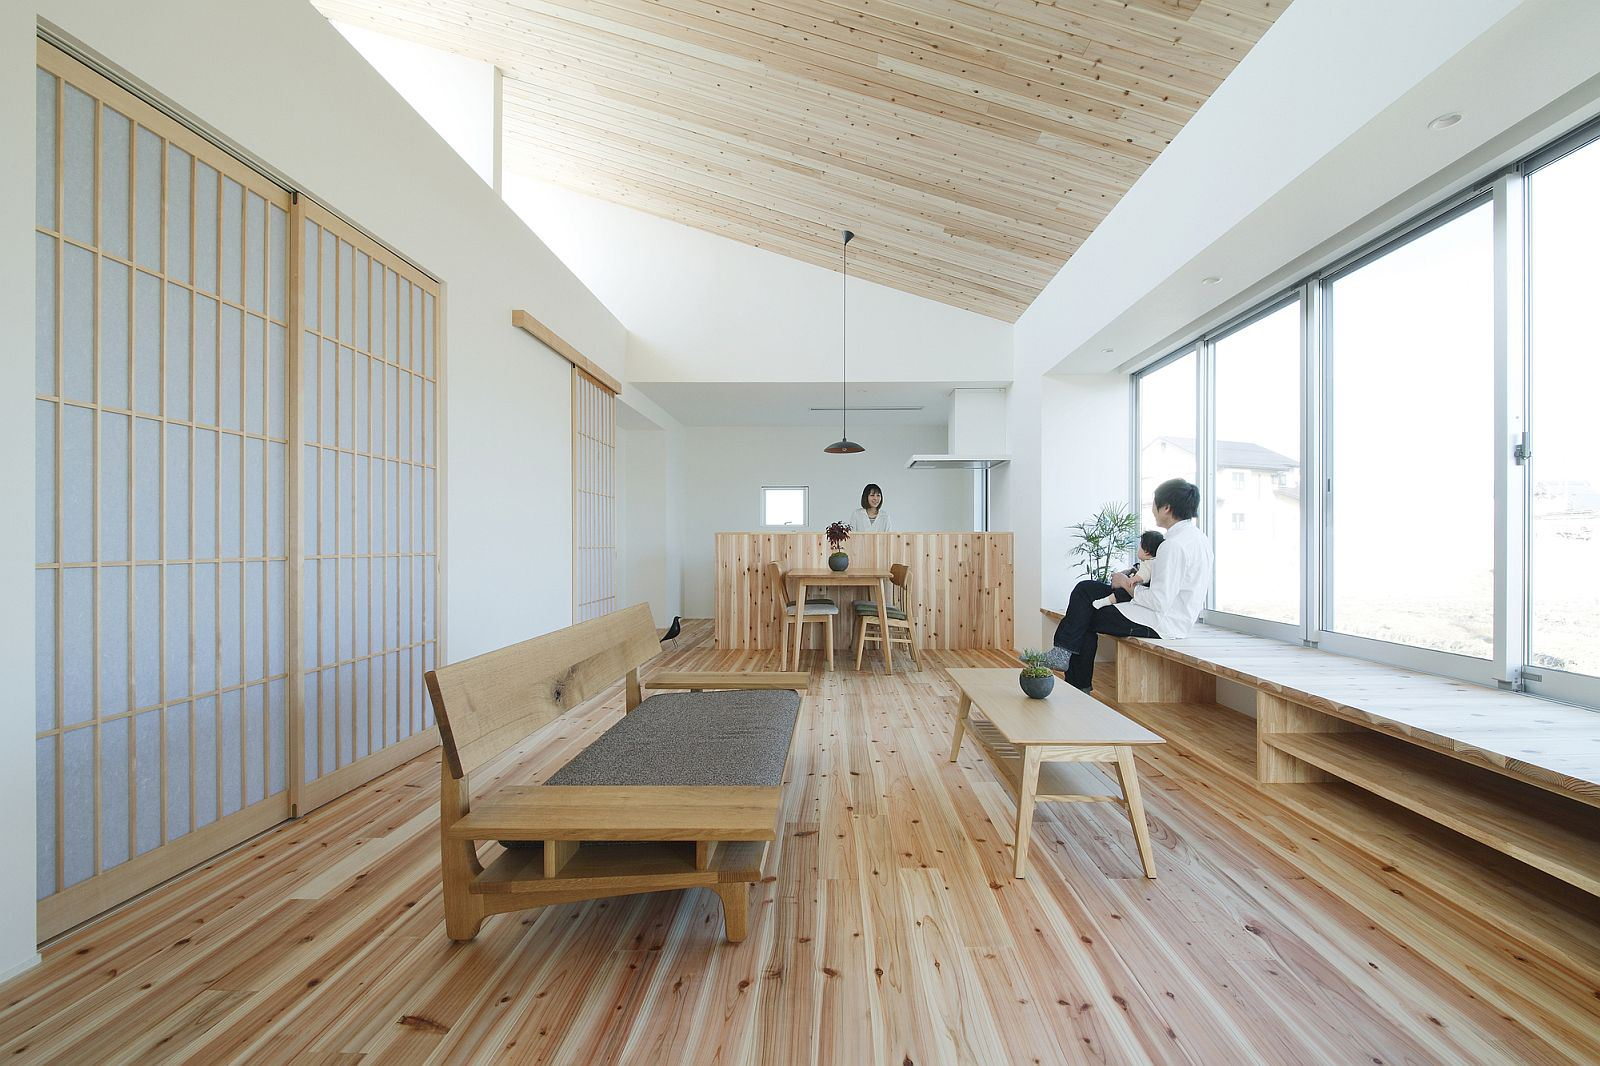 alts design office 768 sf japanese family small house 009 - 50+ Modern Japanese Small House Interior Design PNG